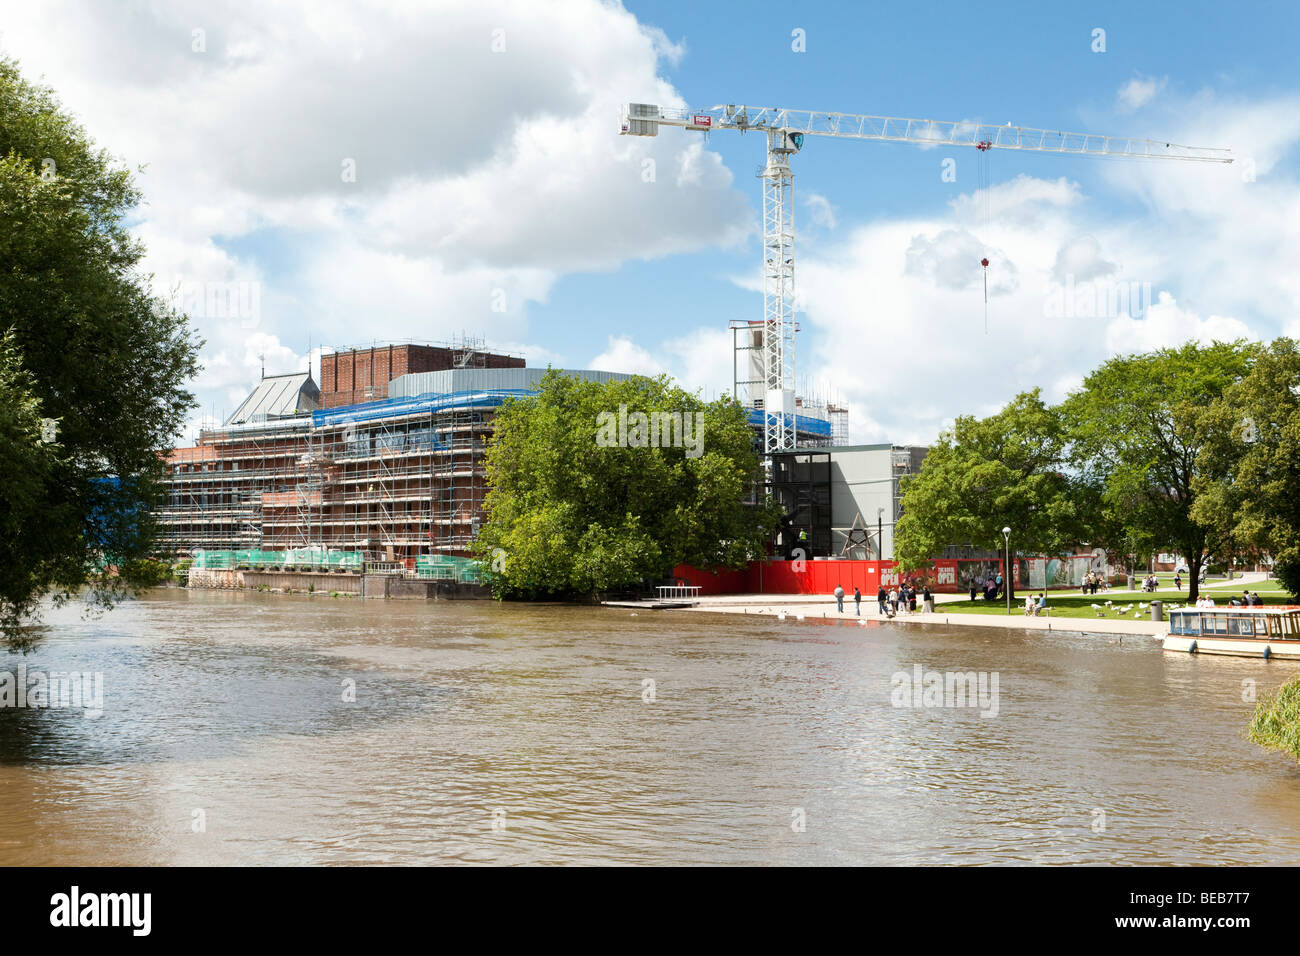 Construction work in progress on the Royal Shakespeare Theatre site beside the River Avon at Stratford upon Avon, - Stock Image